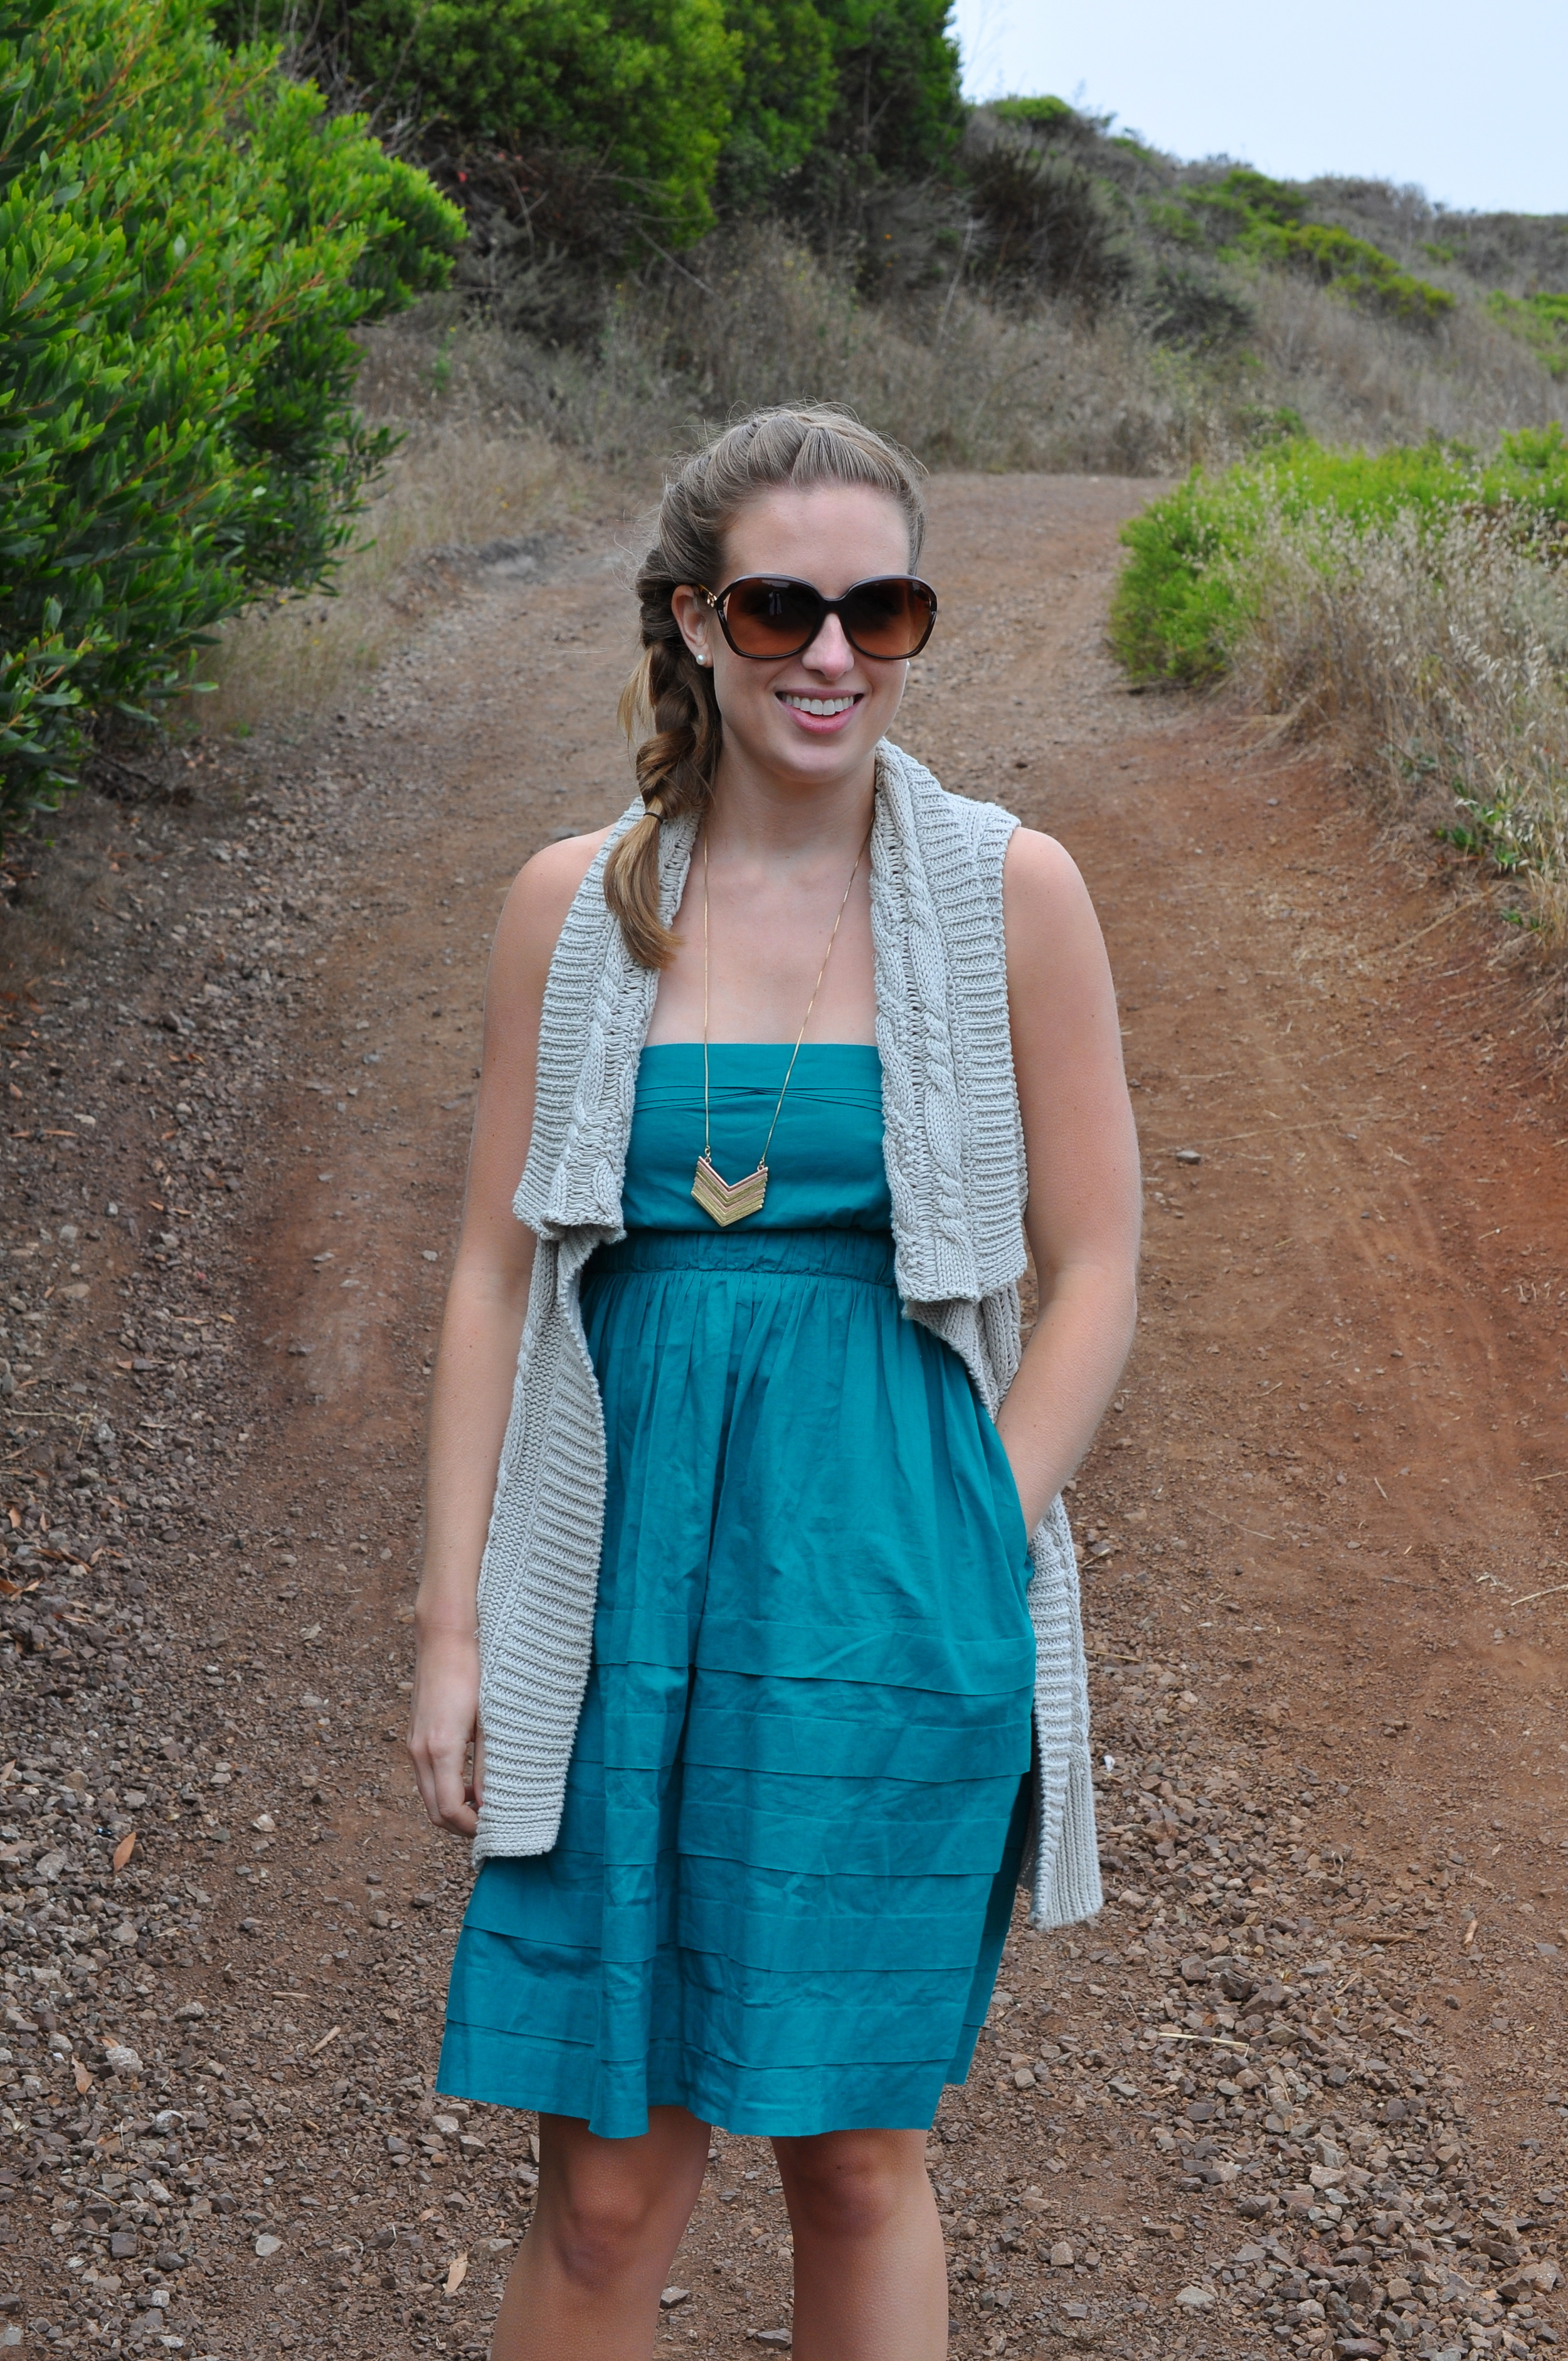 Banana Republic vest (old), Anthropologie dress (old), Rocket Dog boots, Madewell necklace, Coach sunglasses